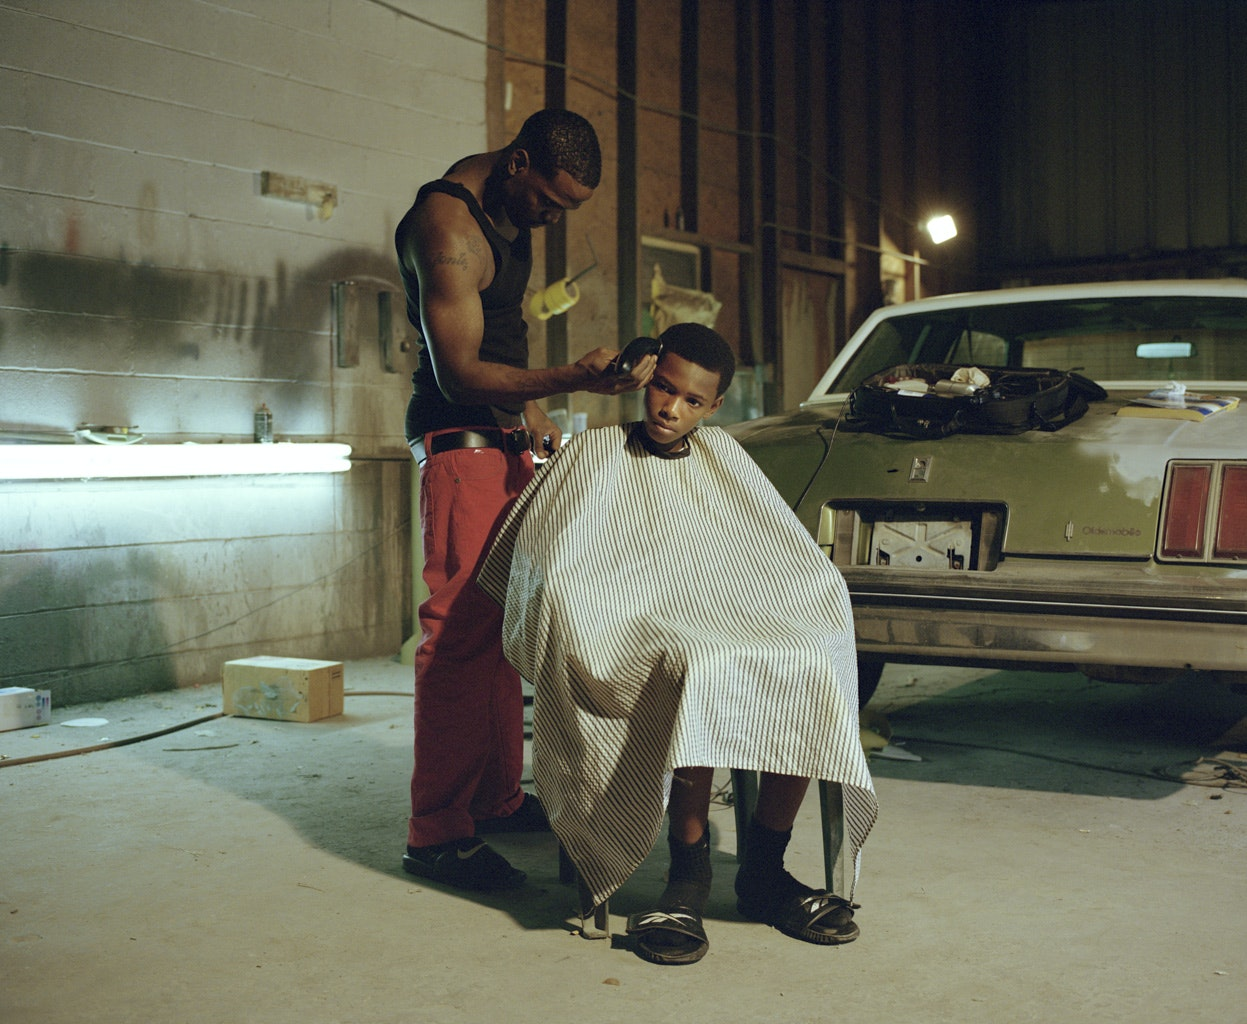 A man gives his brother a haircut in the garage where they work in Baton Rouge, Louisiana.